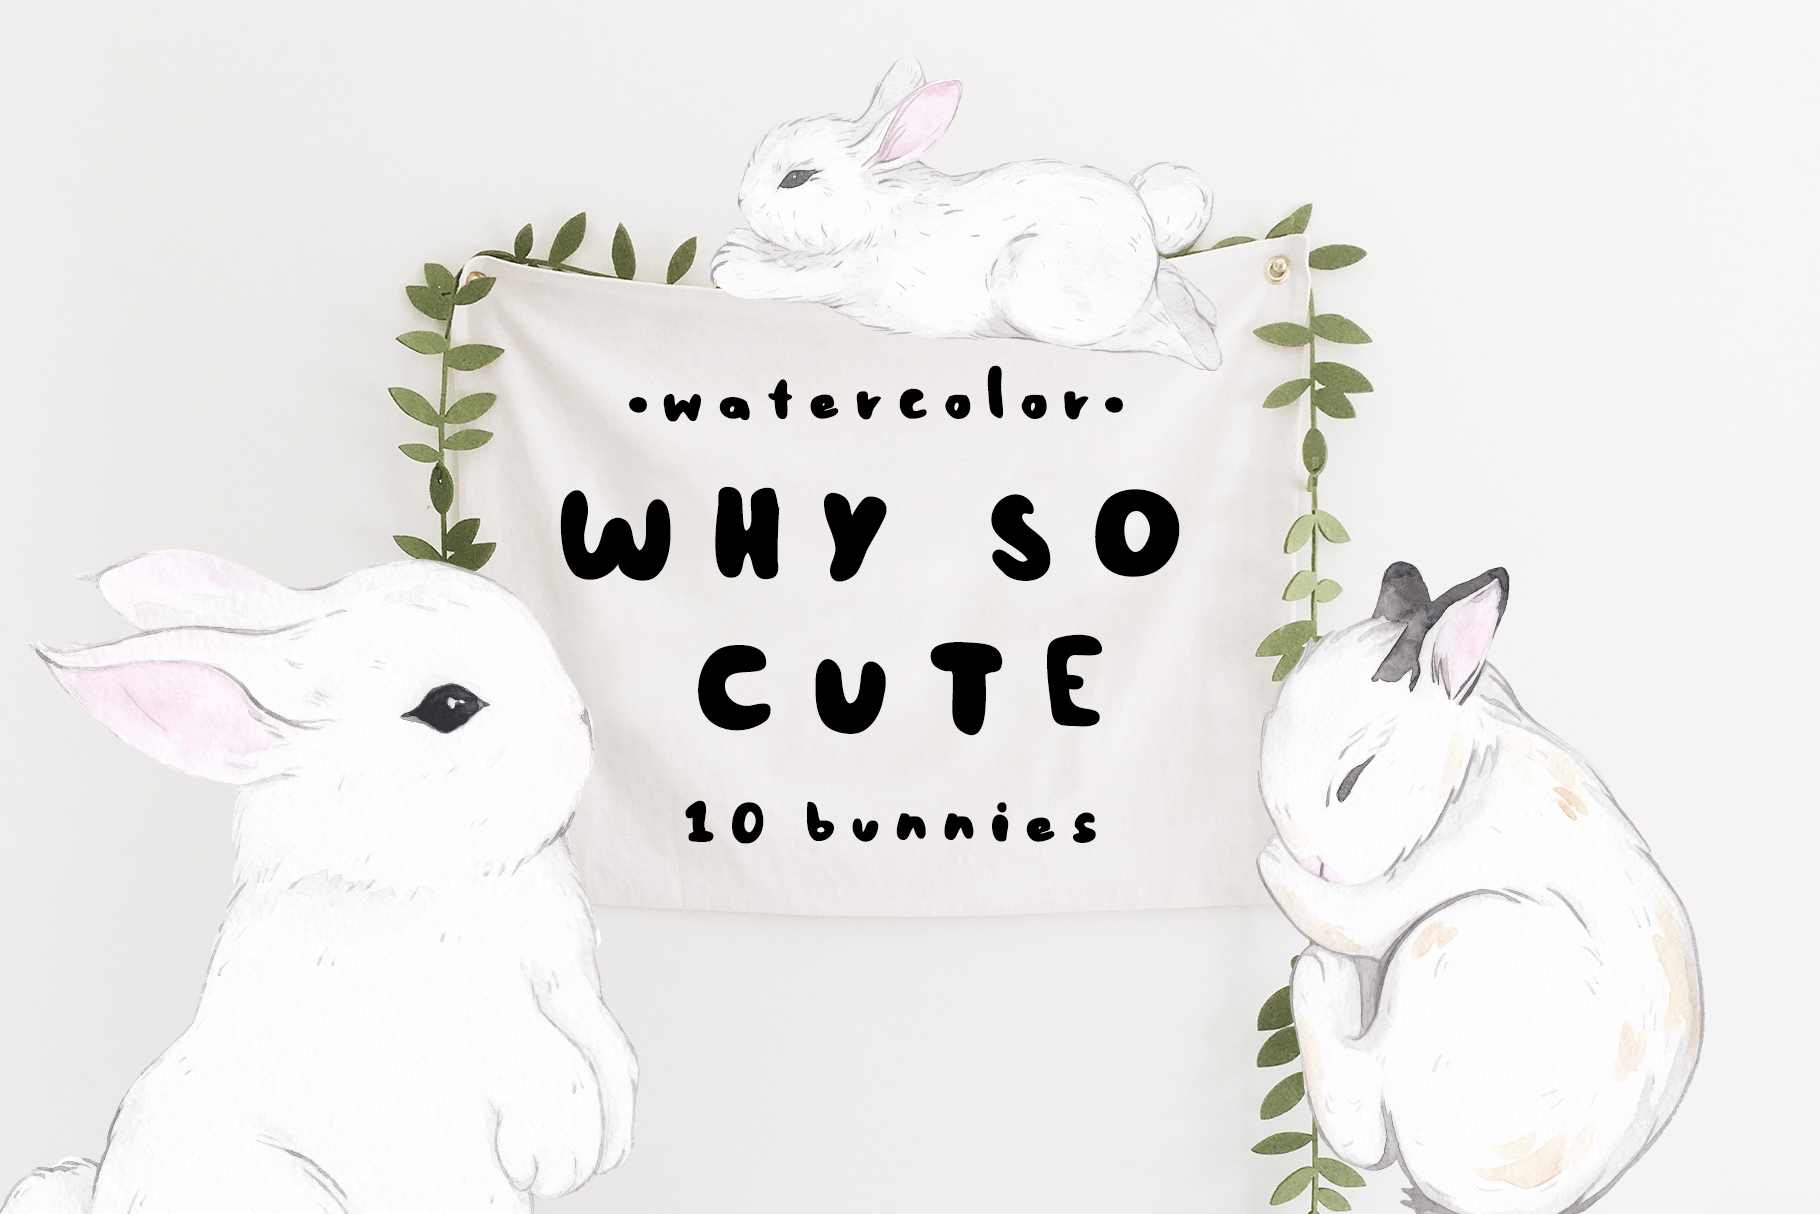 WHY SO CUTE 10 Easter watercolor bunnies example image 1